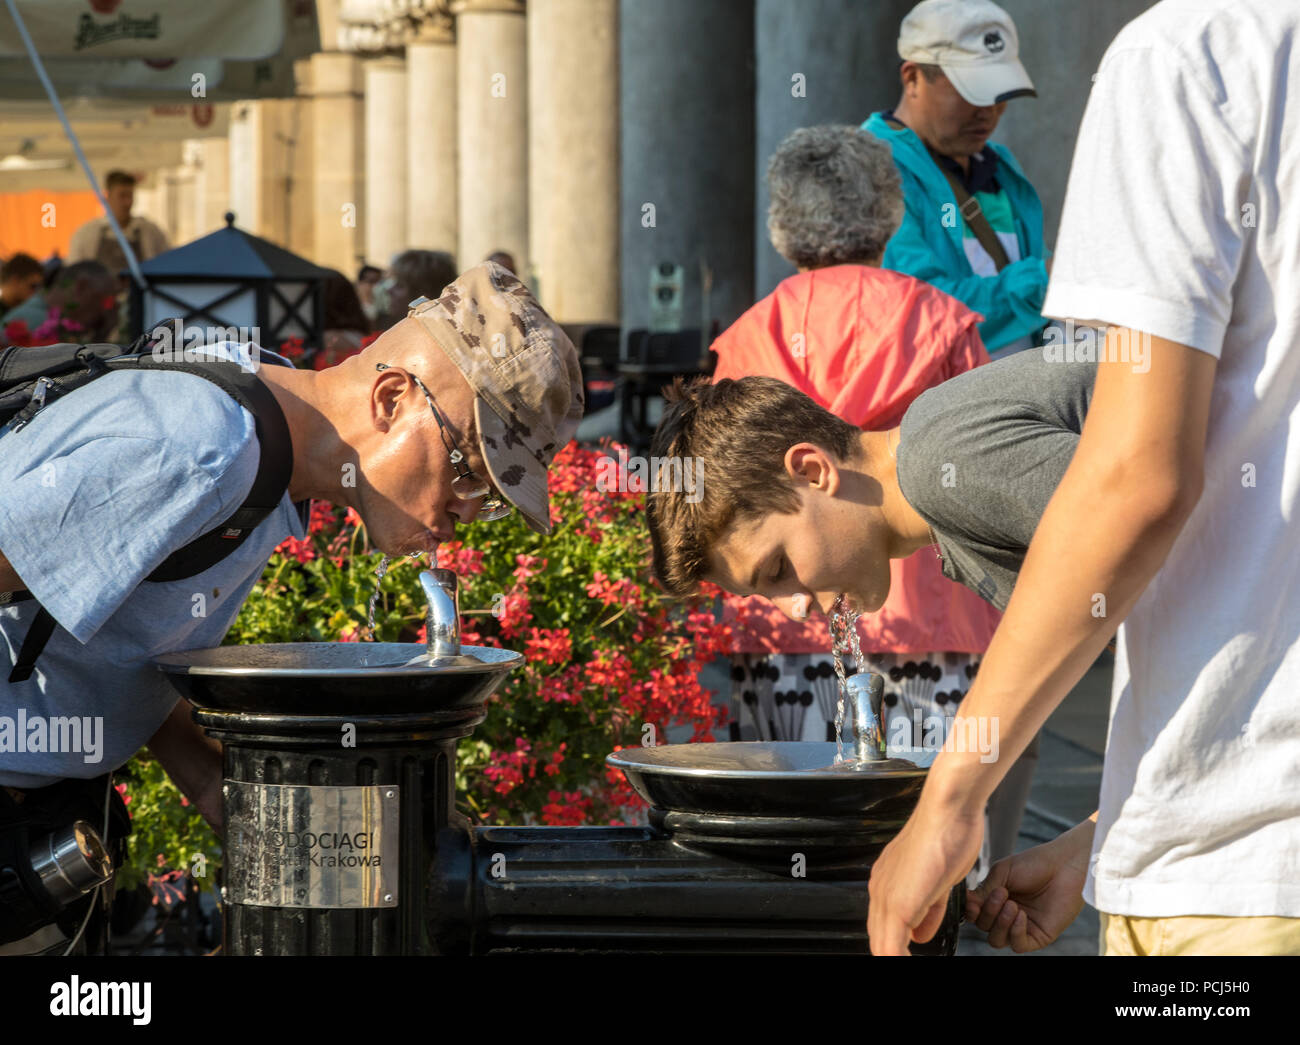 Cracow, Poland - July 5, 2018: Woman is refreshing at fountain in sweltering hot days on Main Square in Cracow - Stock Image